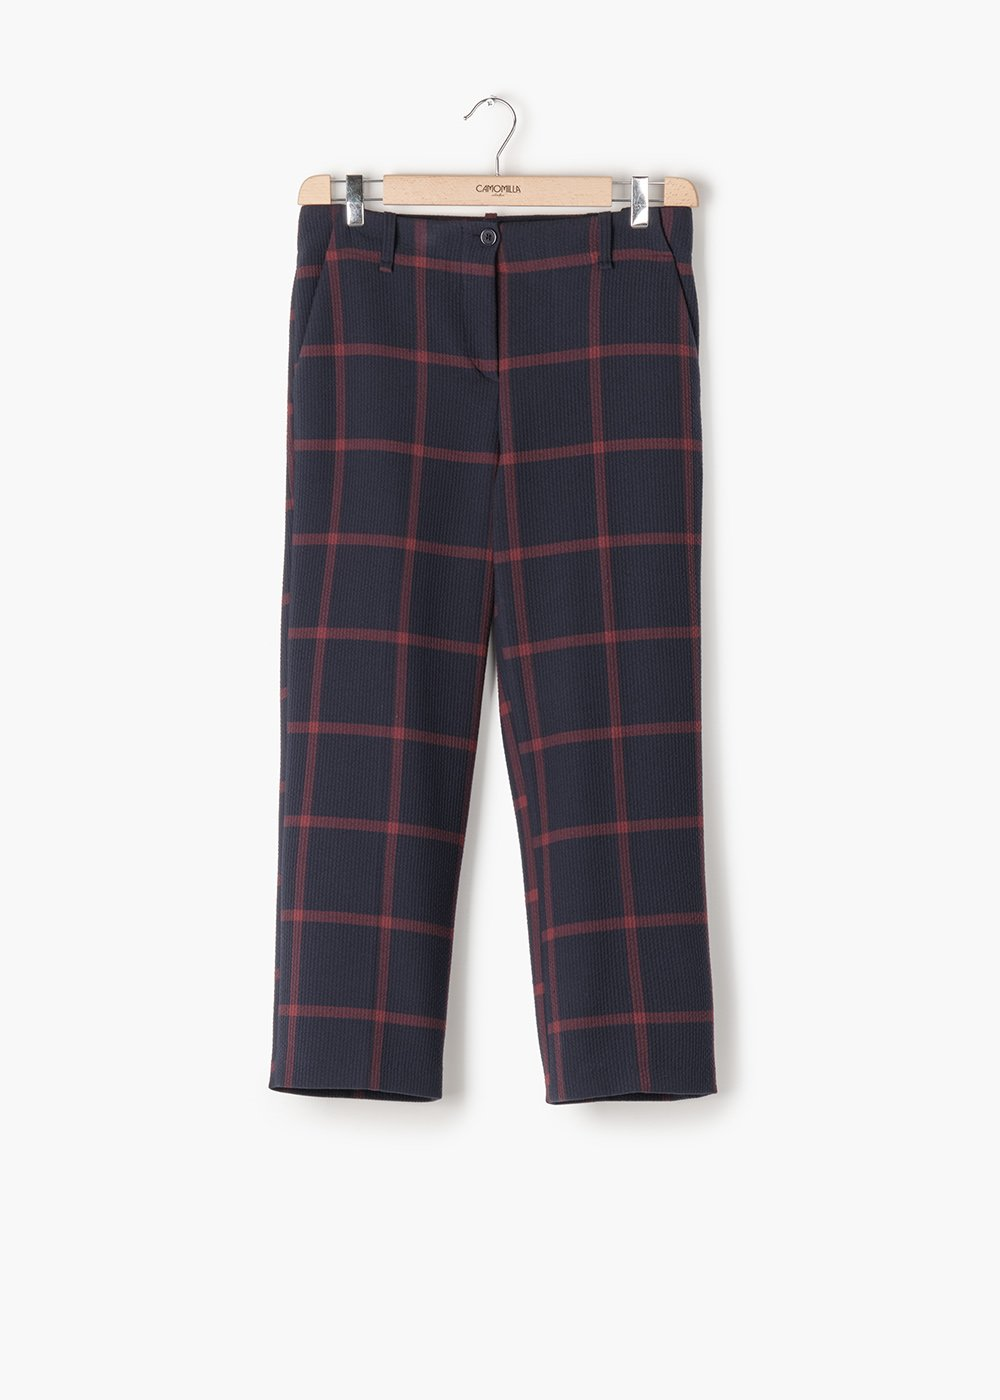 Paolo trousers in seesucker fabric in checked squares - Blue / Bordeaux Fantasia - Woman